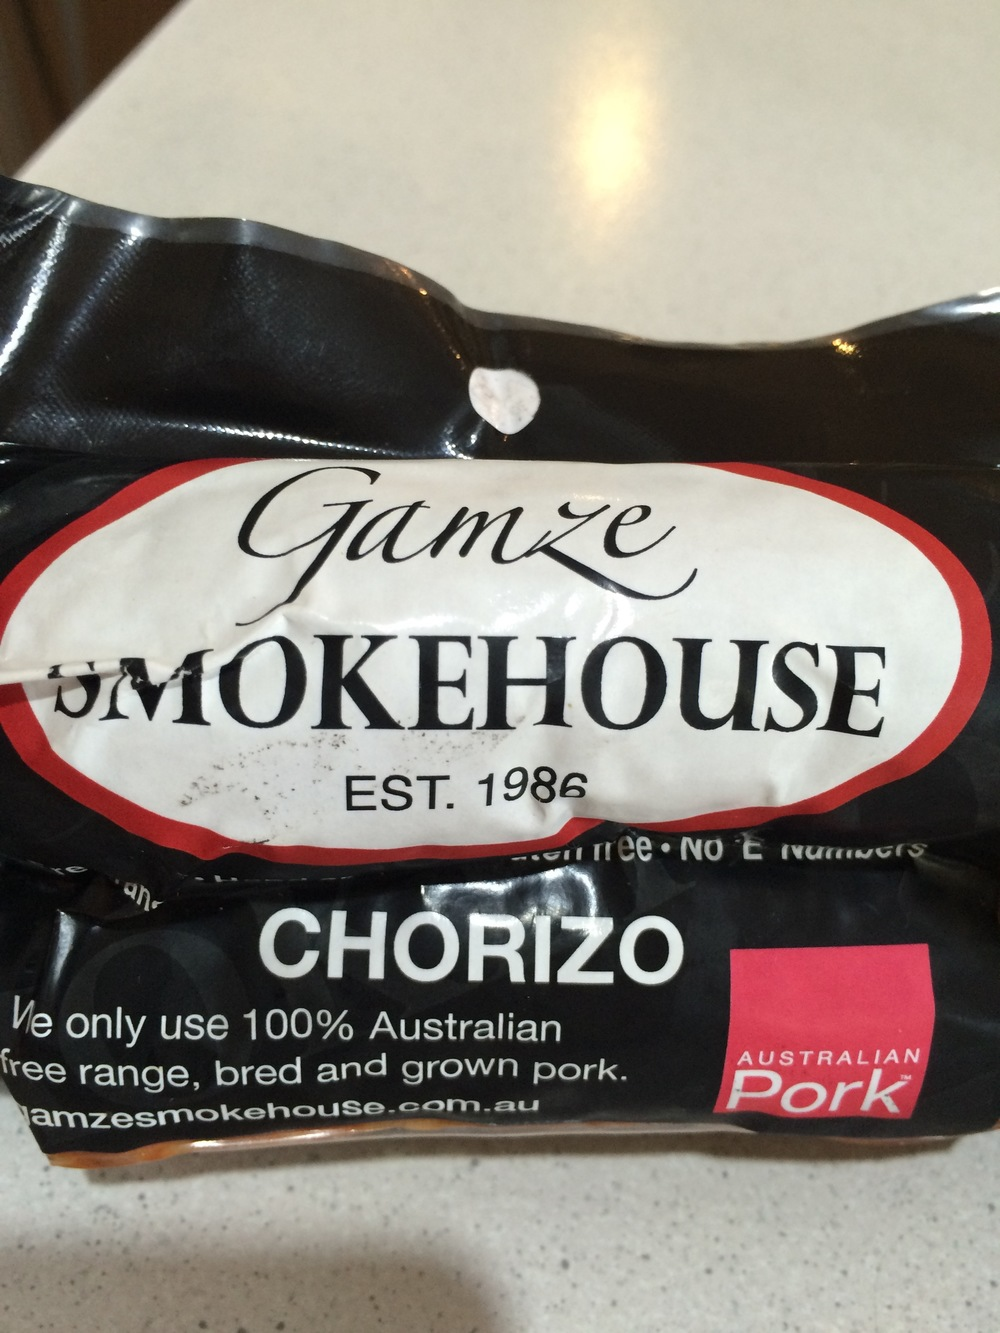 This is the brand of chorizo I use